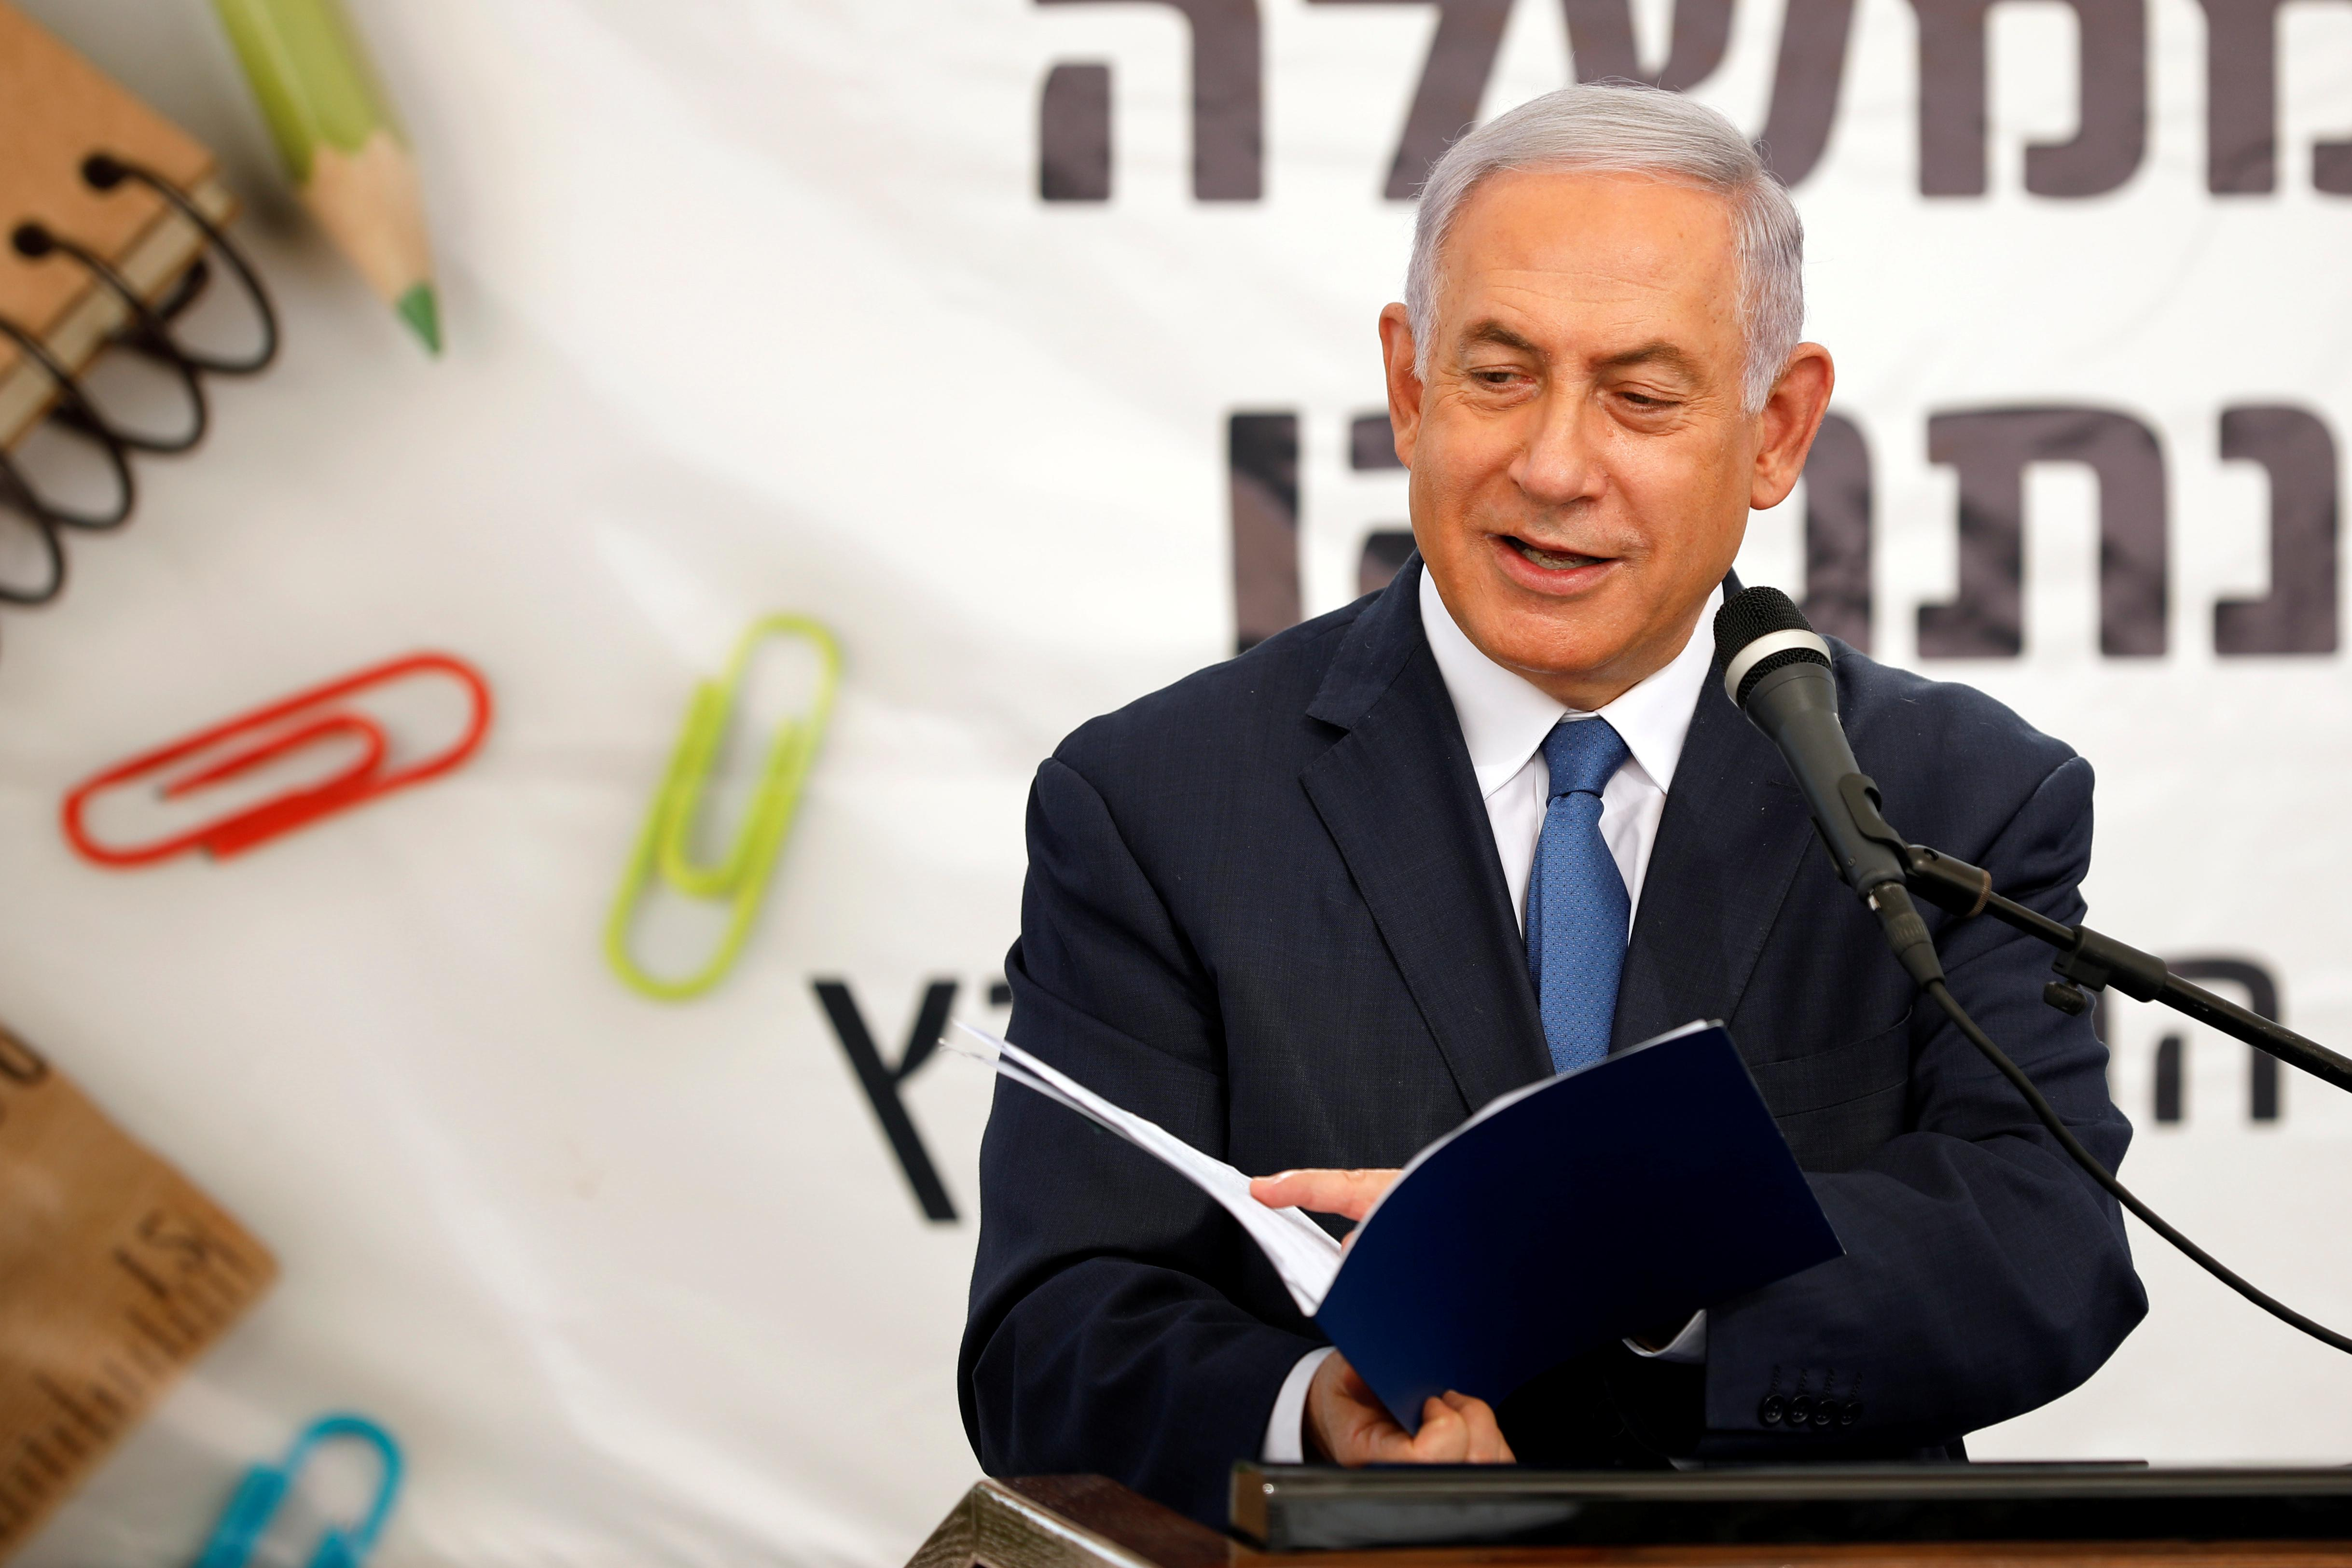 Netanyahu repeats pledge to annex Israeli settlements in occupied...